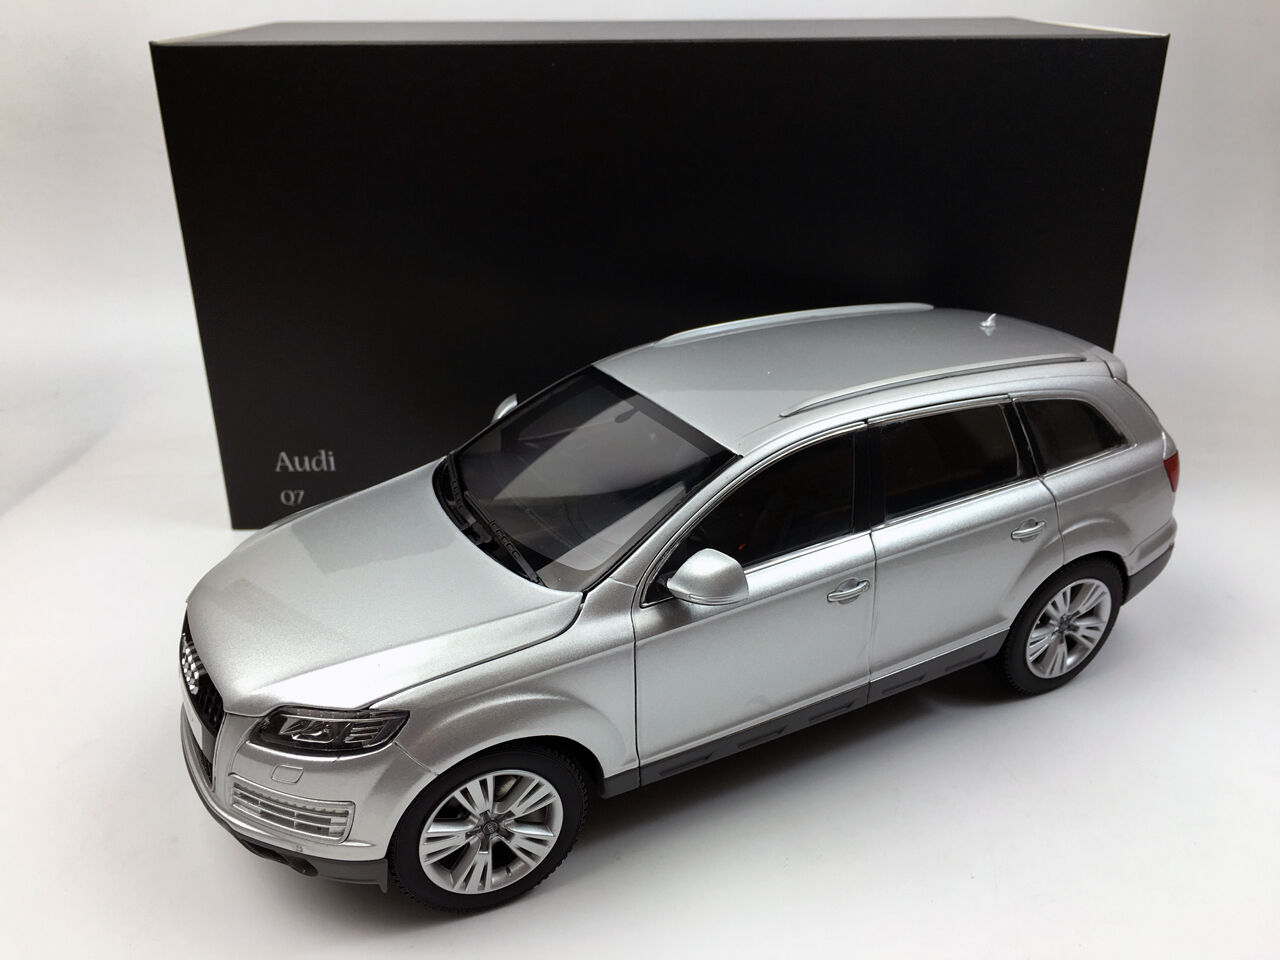 Kyosho 1 18 AUDI Q7 2013 Hielo argento Metal Fundido Coche Modelo NO.09222IS